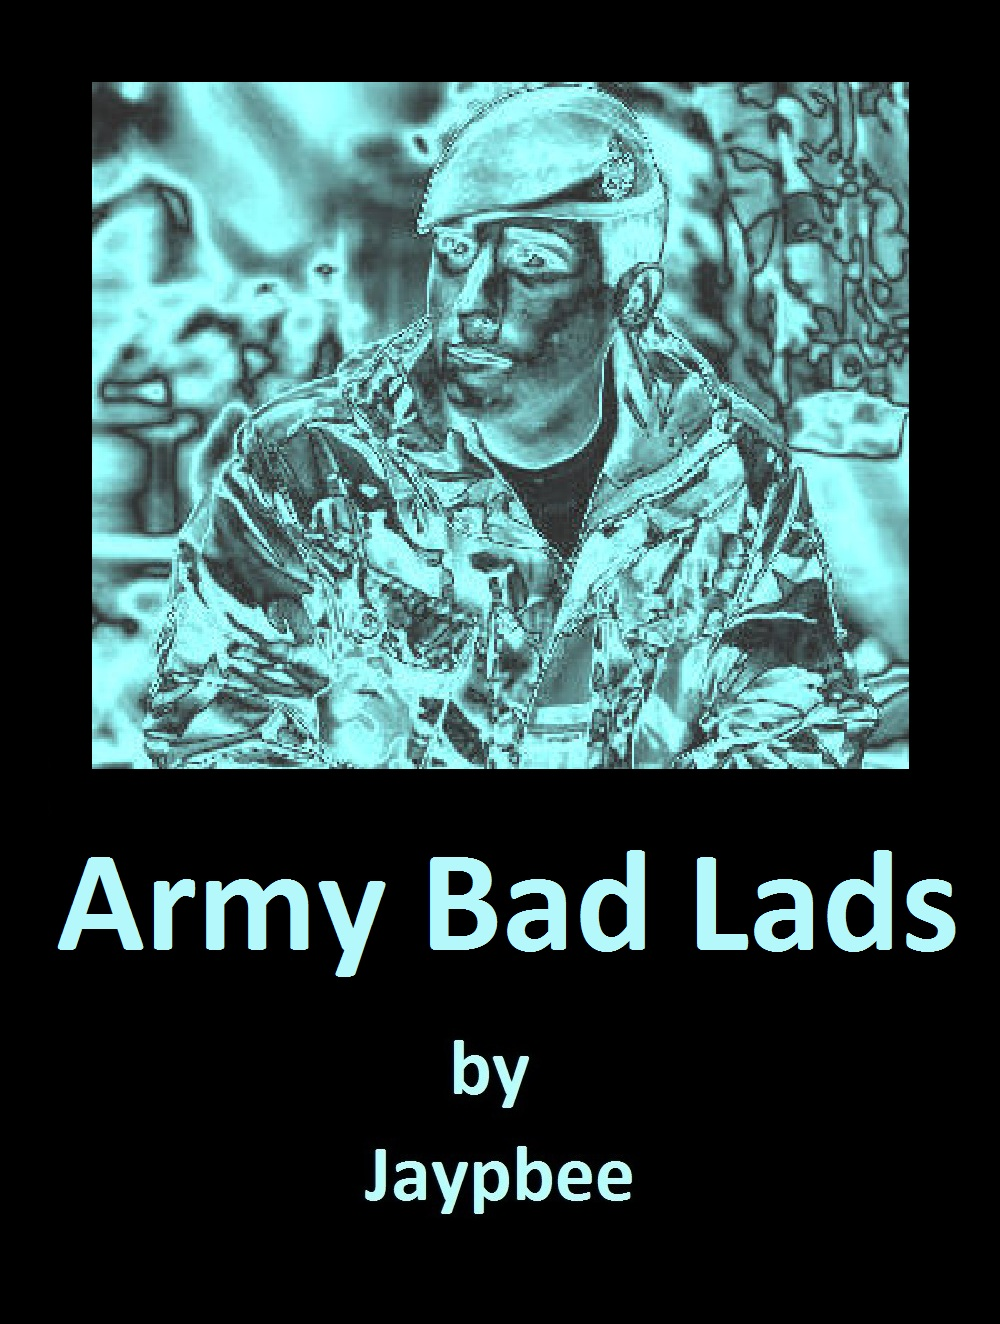 Army Bad Lads